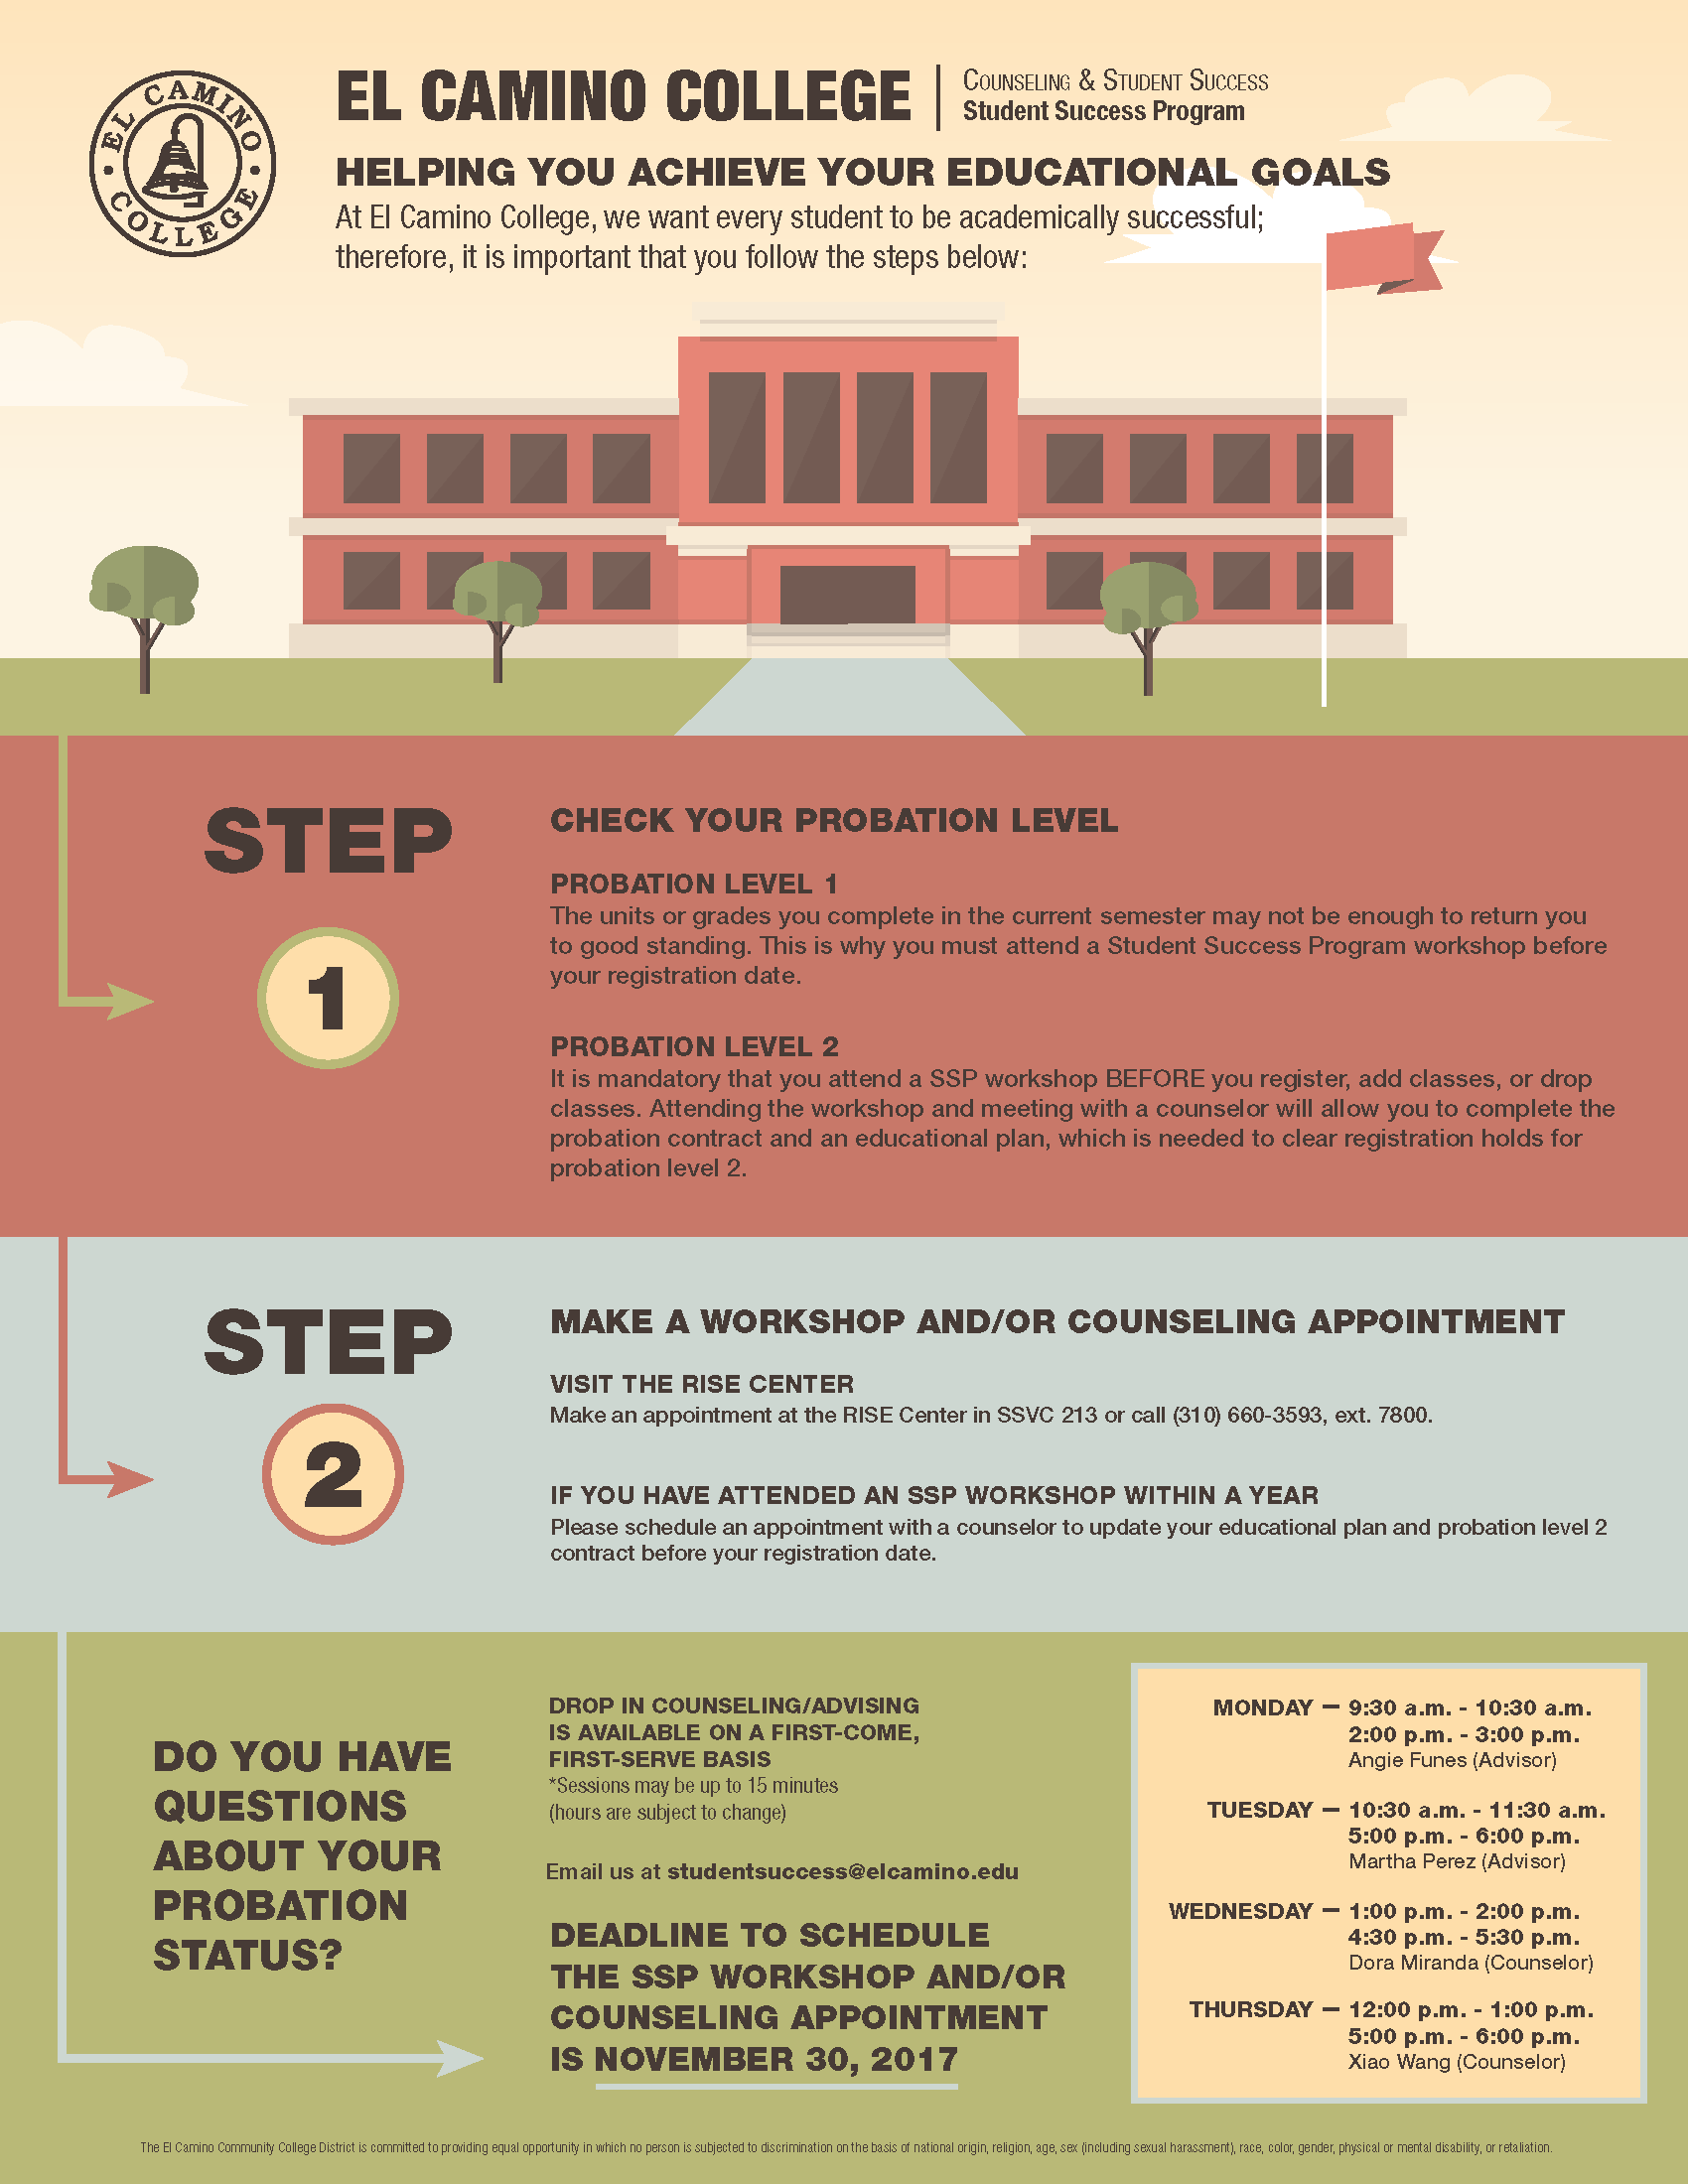 Student Success Program - Steps